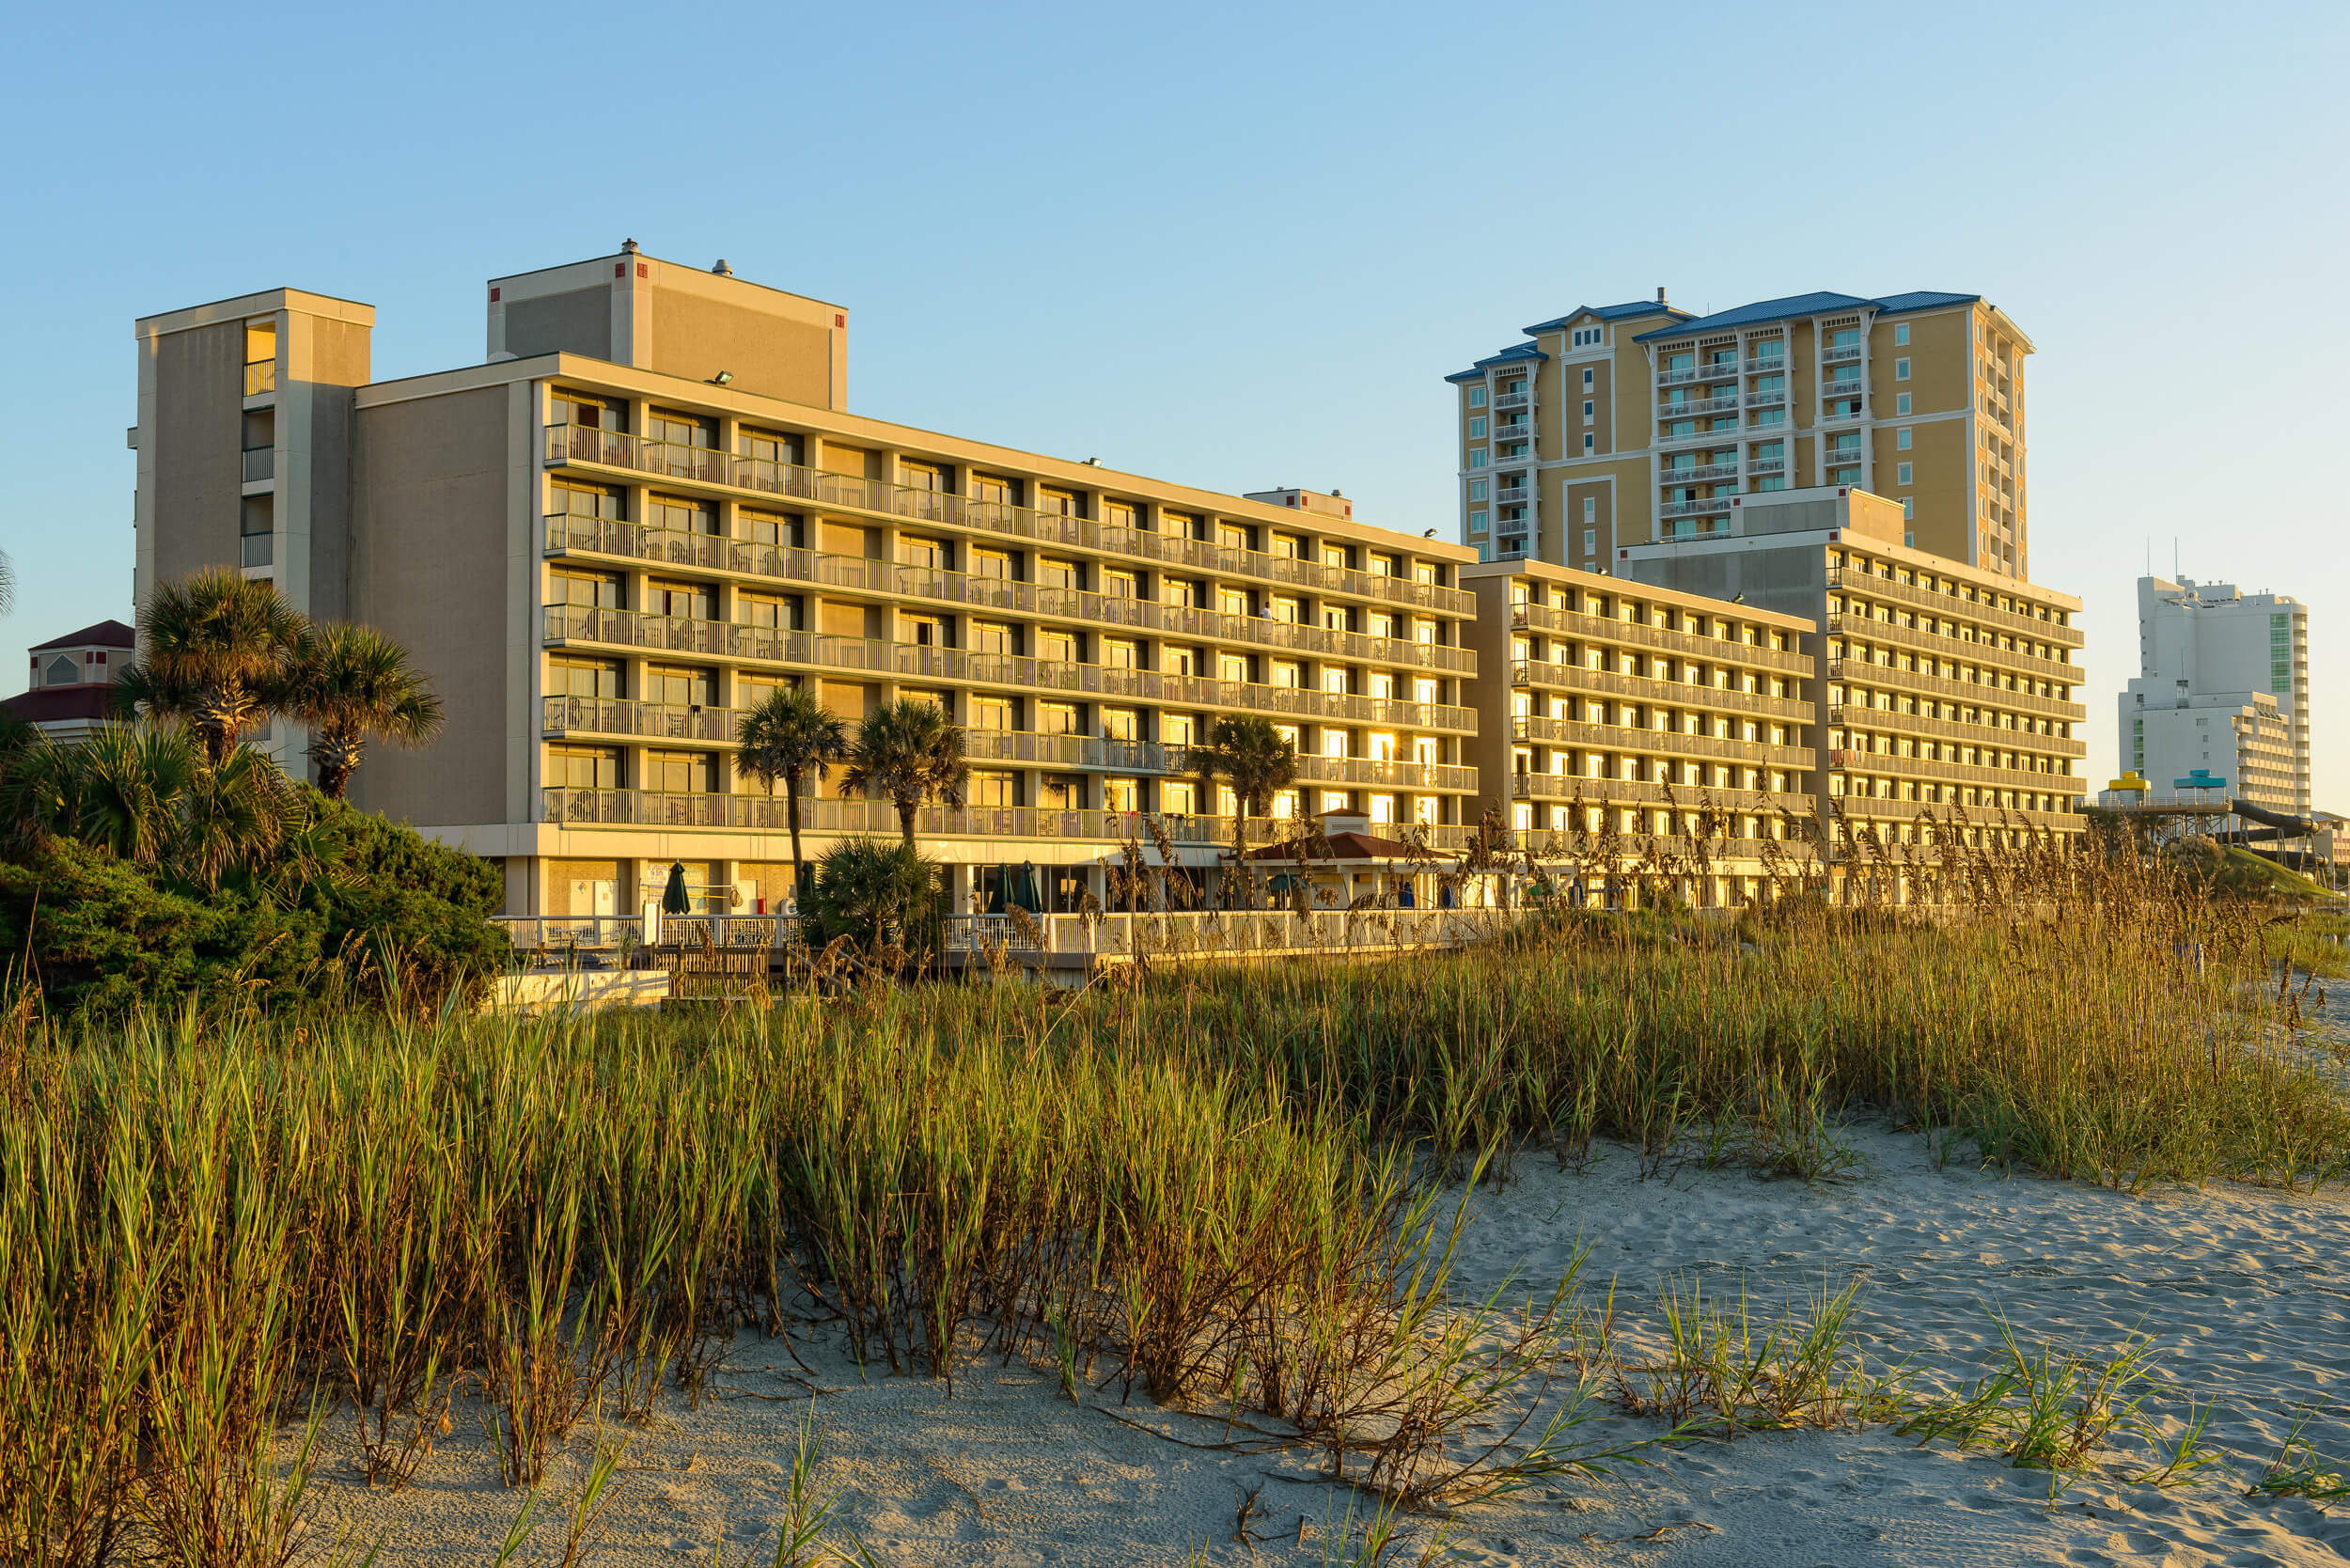 Exterior of Myrtle Beach resort on Grand Strand | Westgate Myrtle Beach Oceanfront Resort